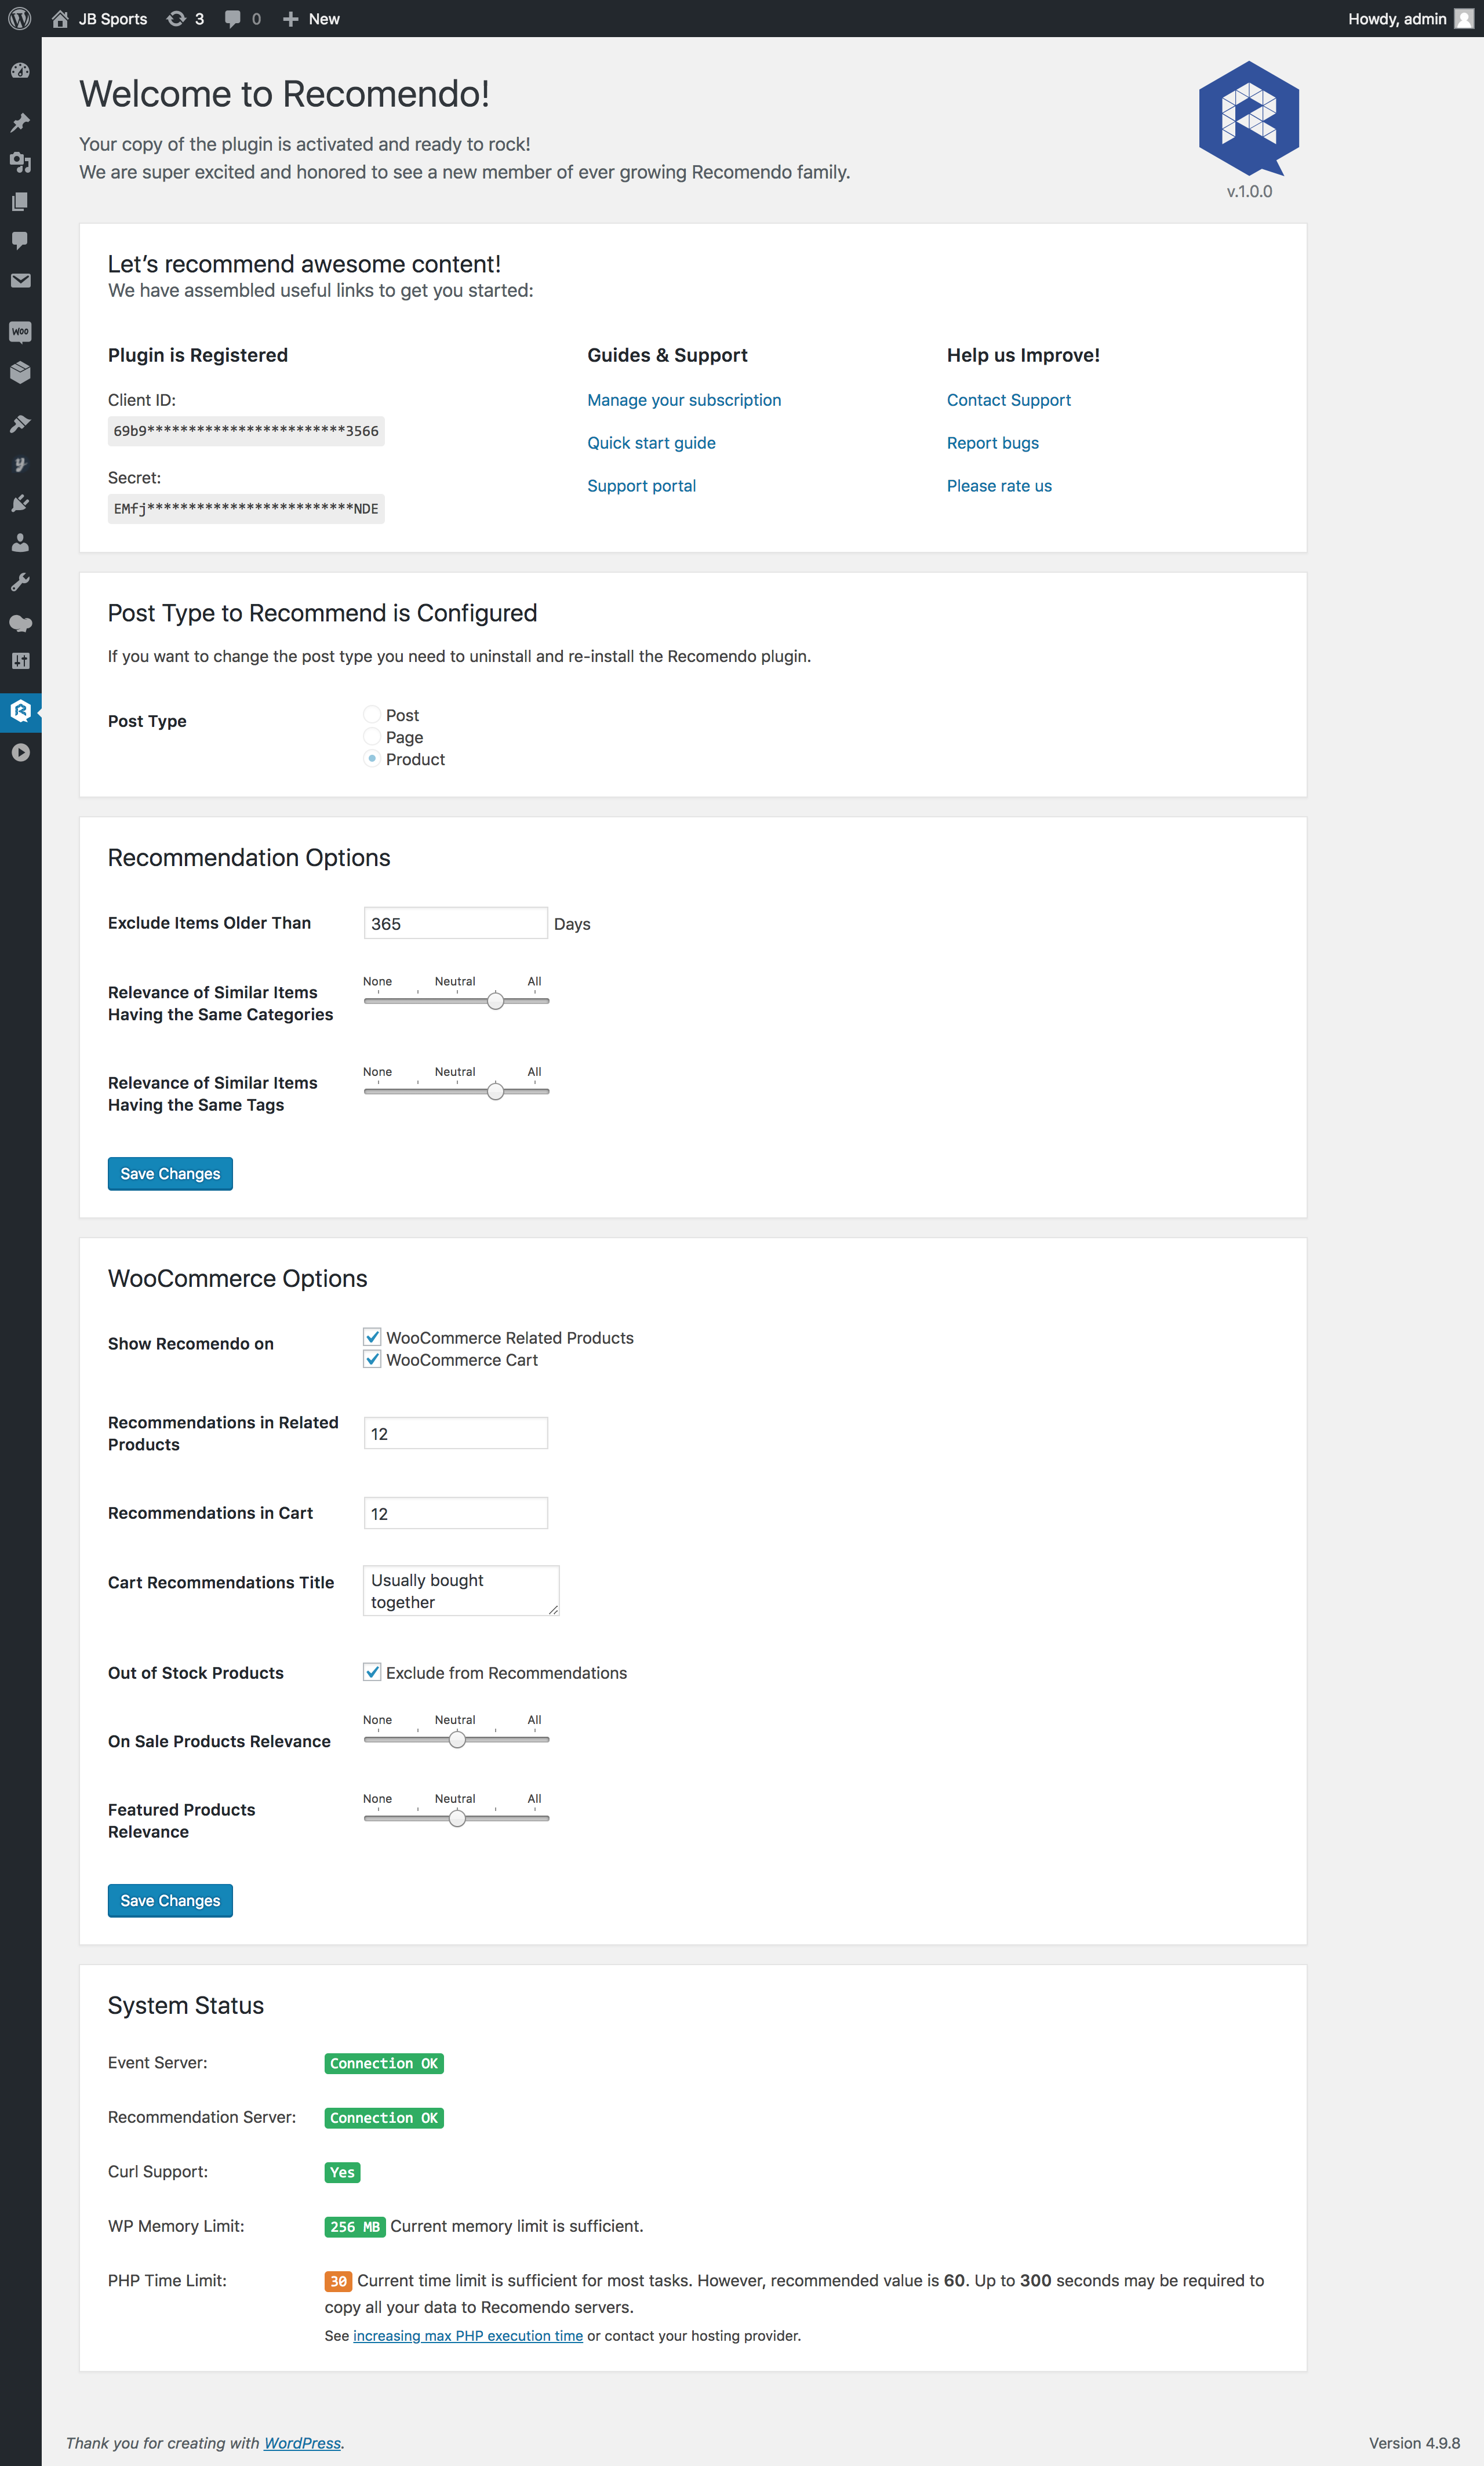 Here's what the interface for configuring Recomendo looks like.